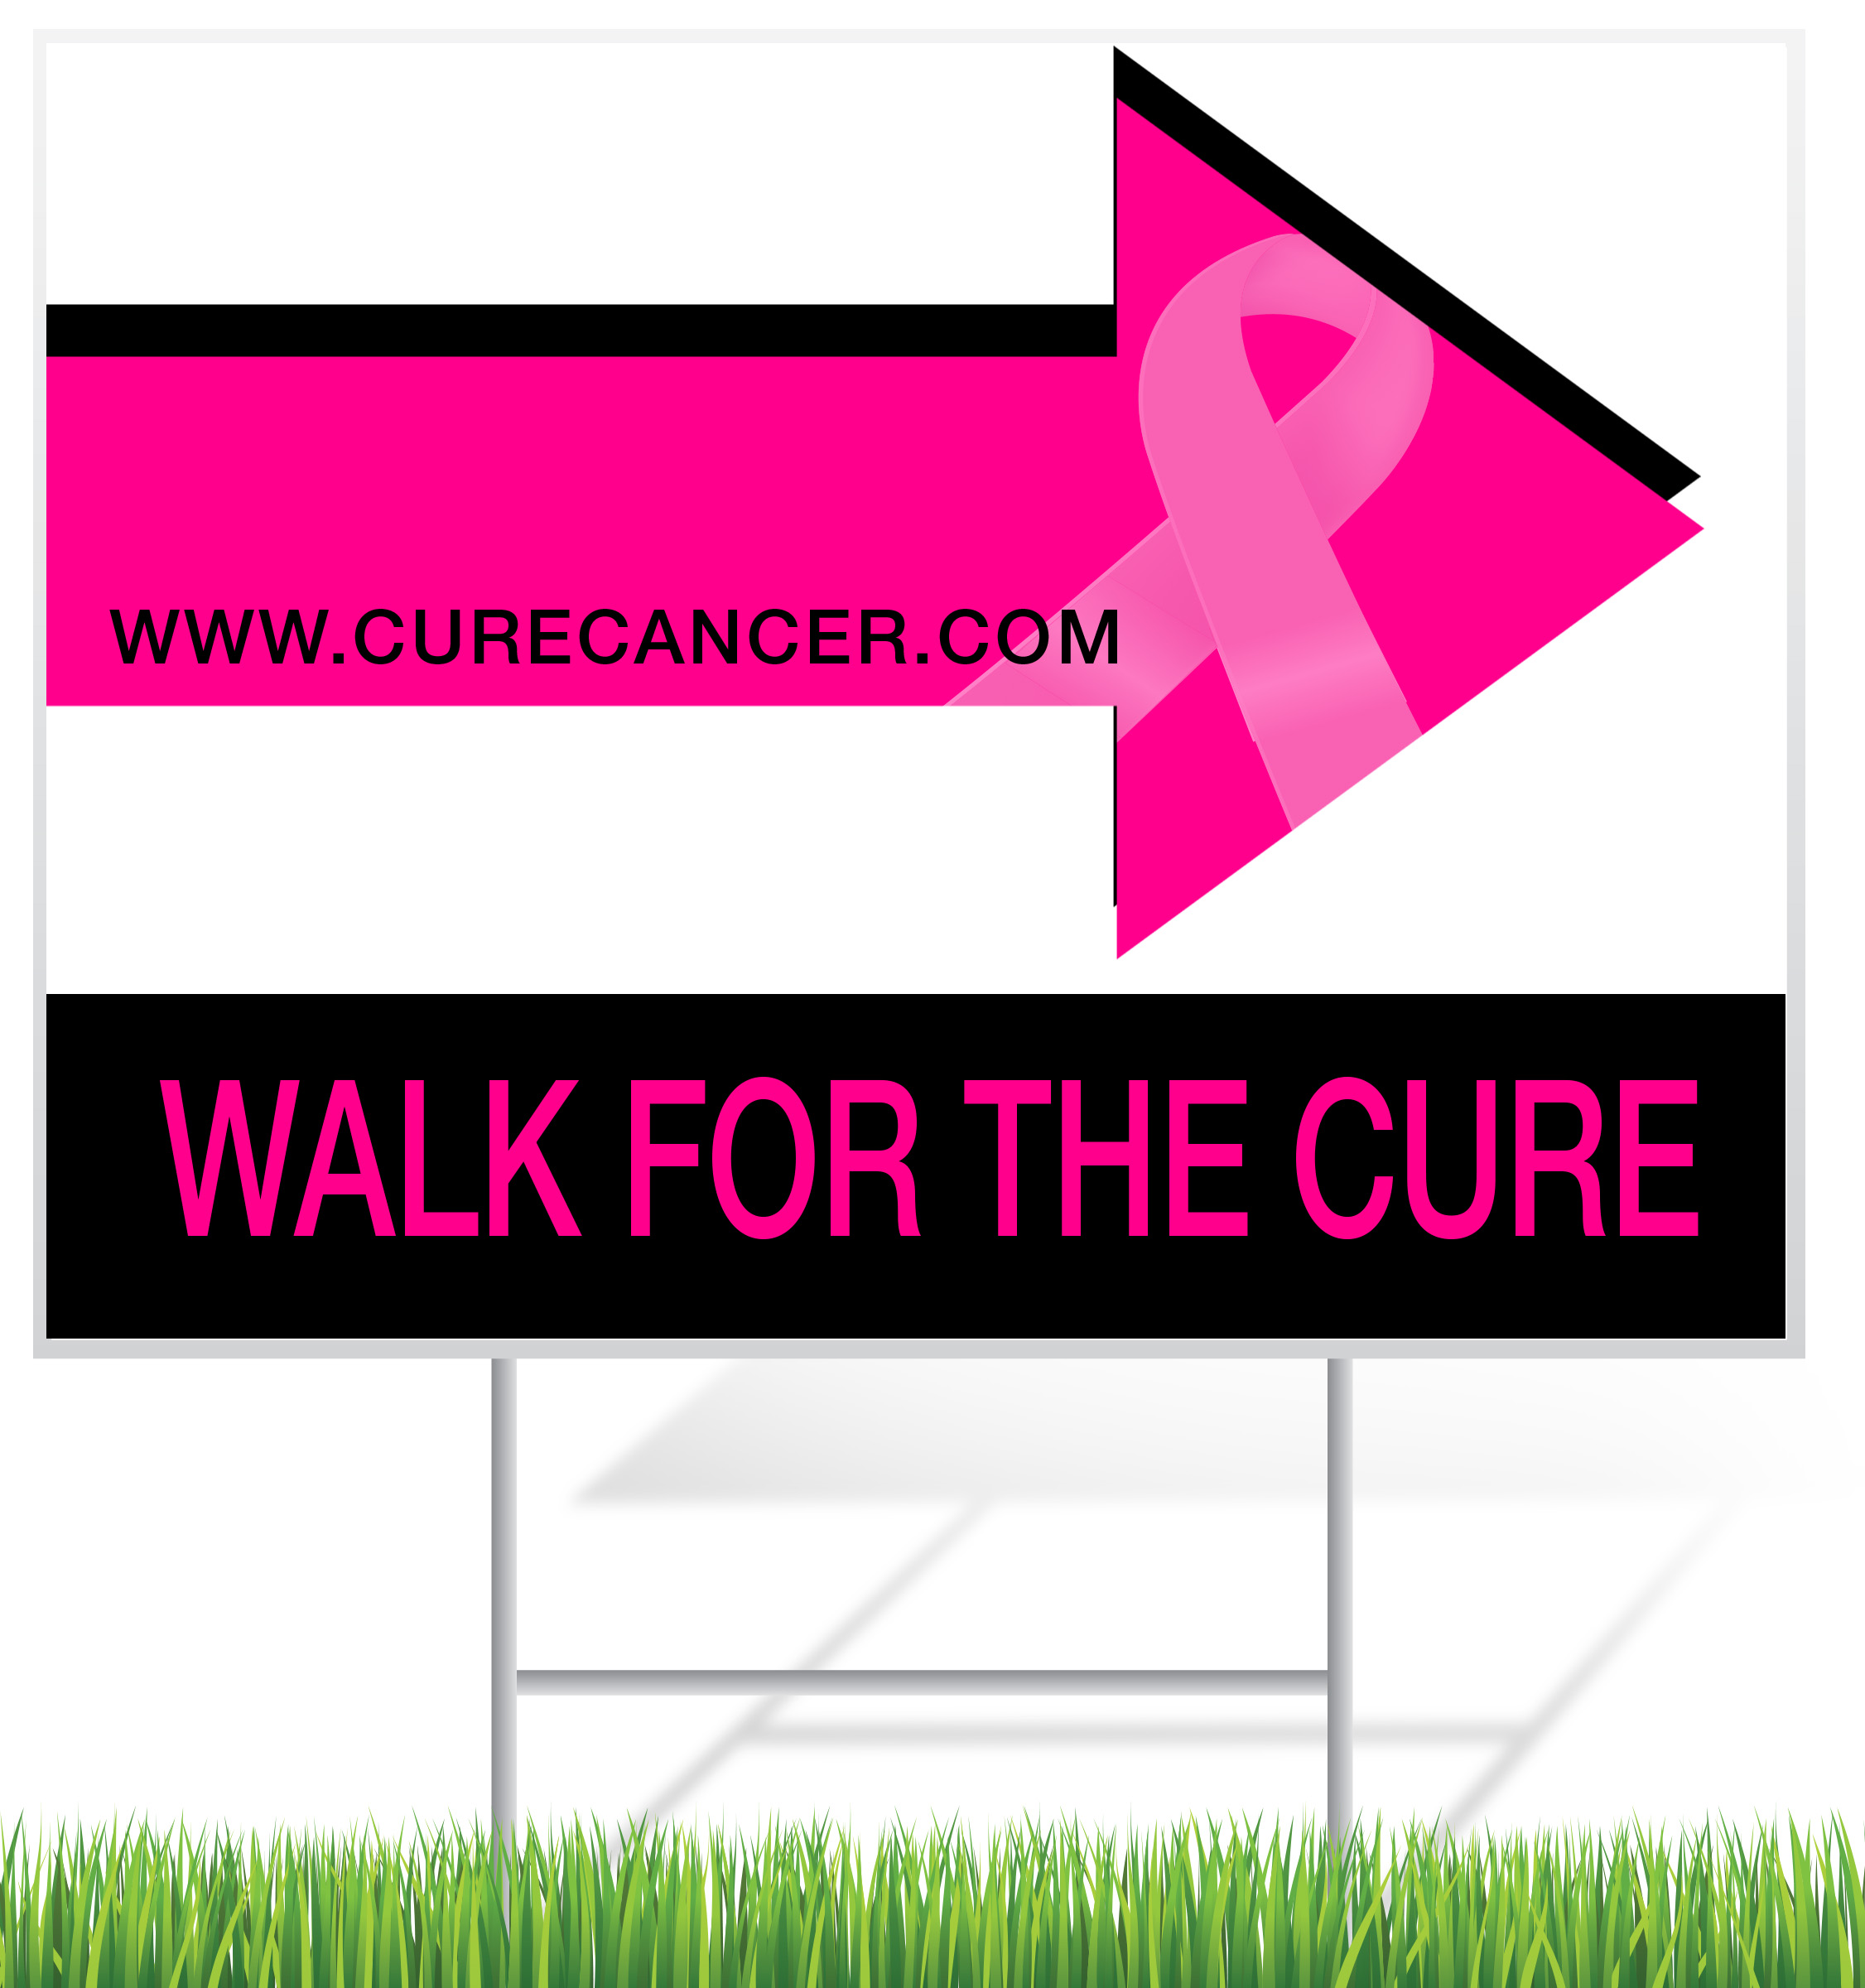 Breast Cancer Awareness Yard Sign Sample | Banners.com